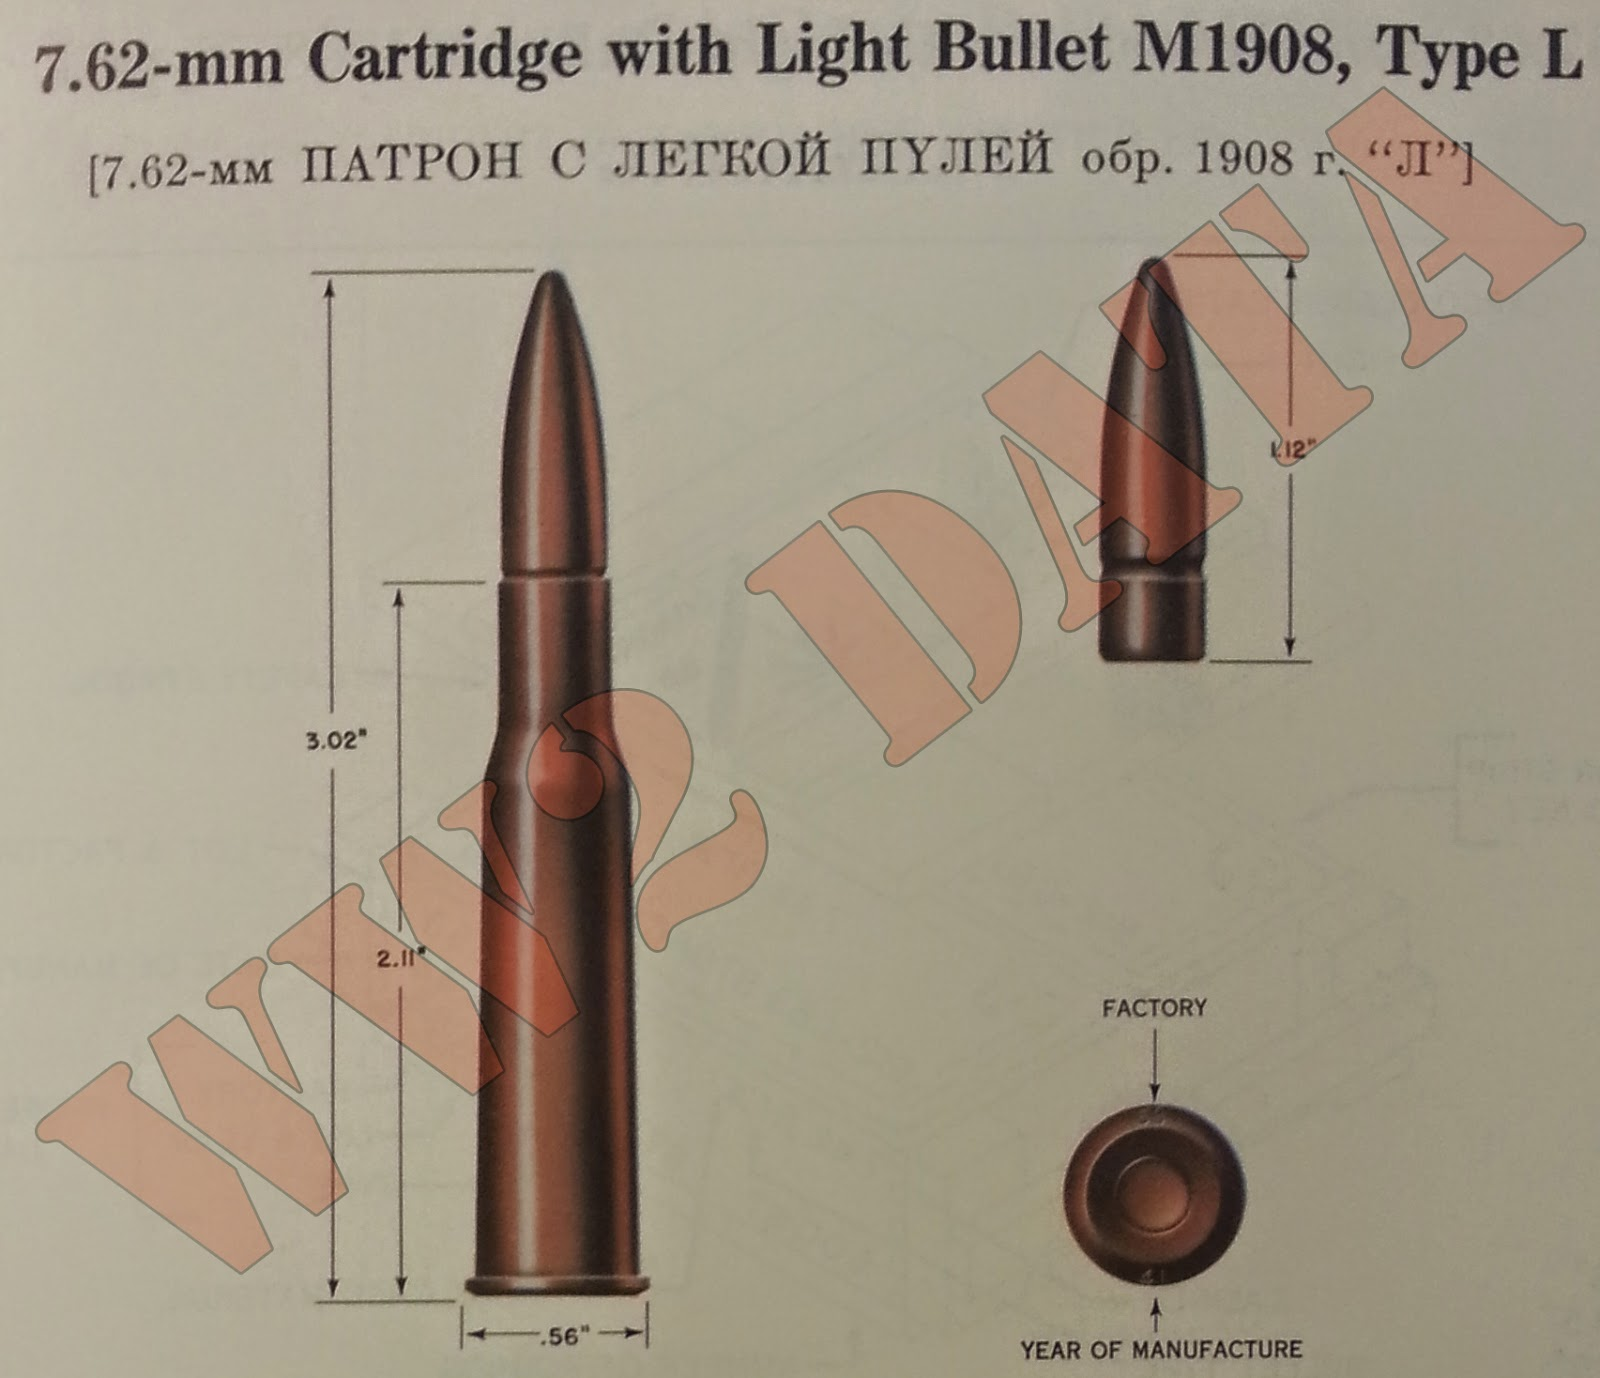 medium resolution of this cartridge was primarily designed for the soviet rifles and carbines but may also be used in all soviet machine guns of this caliber